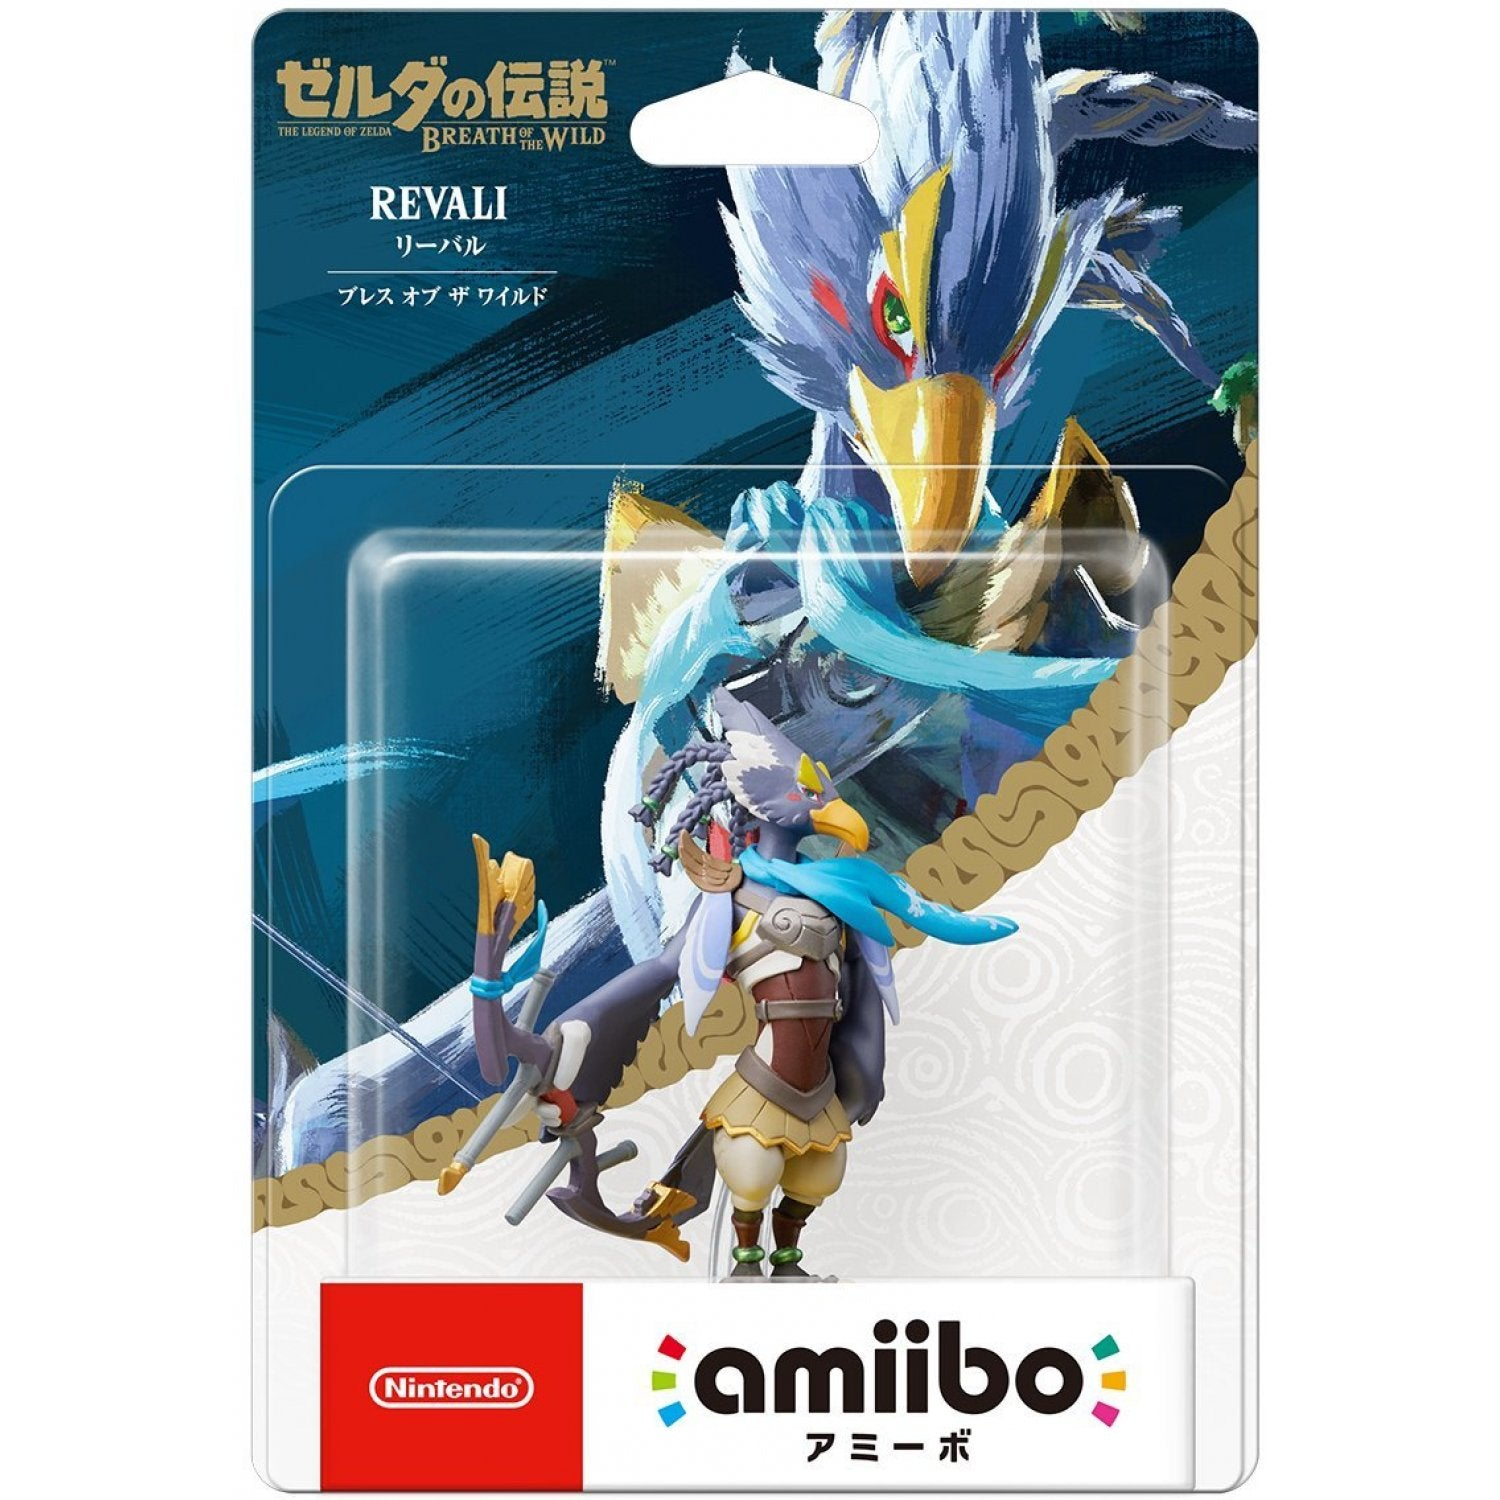 Amiibo The Legend of Zelda: Breath of the Wild Series Figure (Revali)